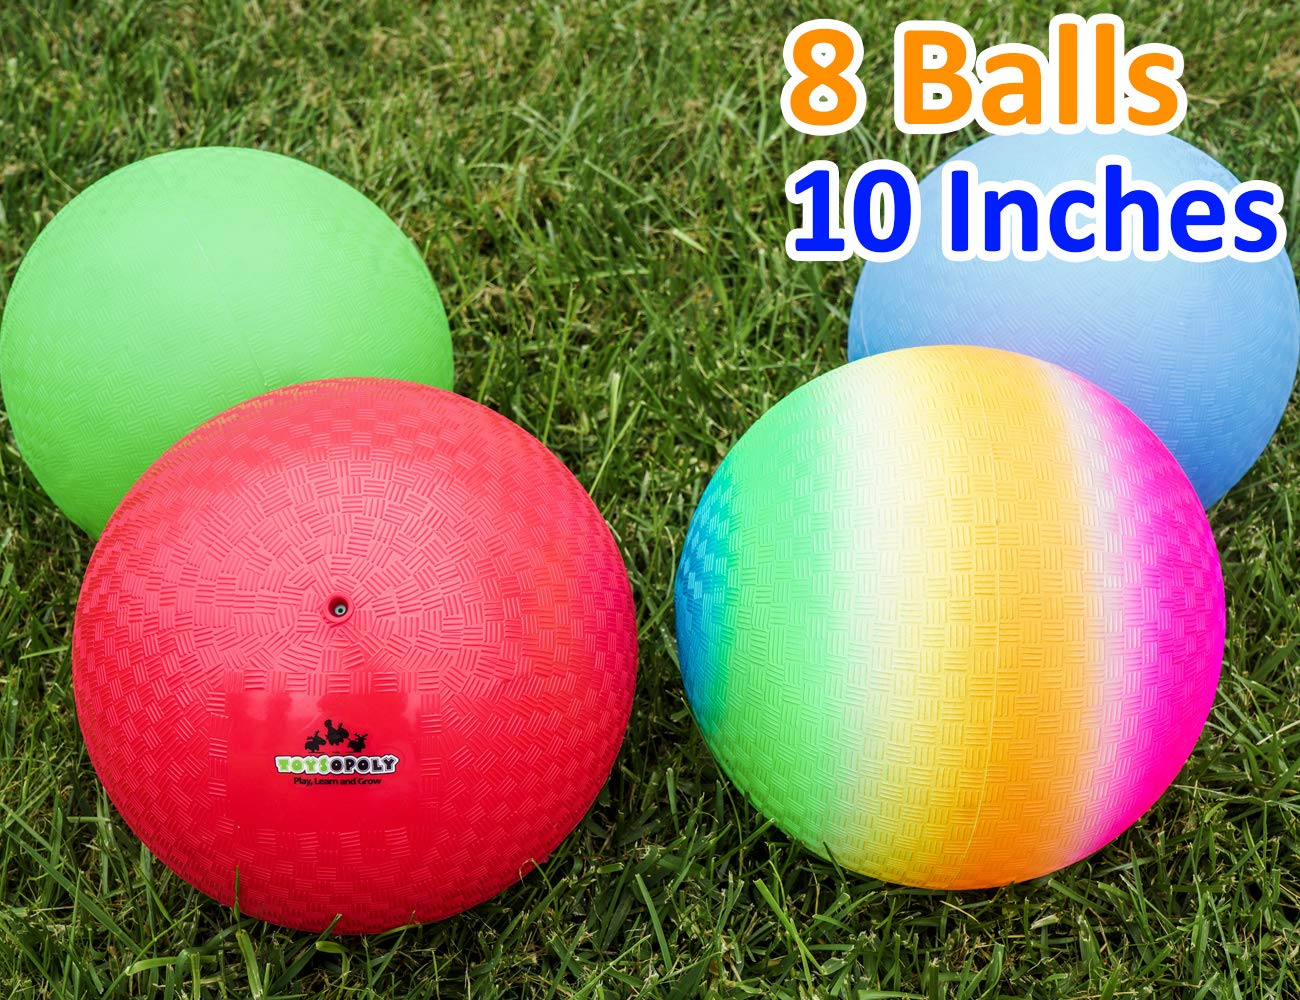 Playground Balls 10 inch Dodgeball (Set of 8) Kickball for Boys Girls Kids Adults - Official Size Bouncy Dodge Ball, Handball, Four Square Picnic School + Free Pump by ToysOpoly